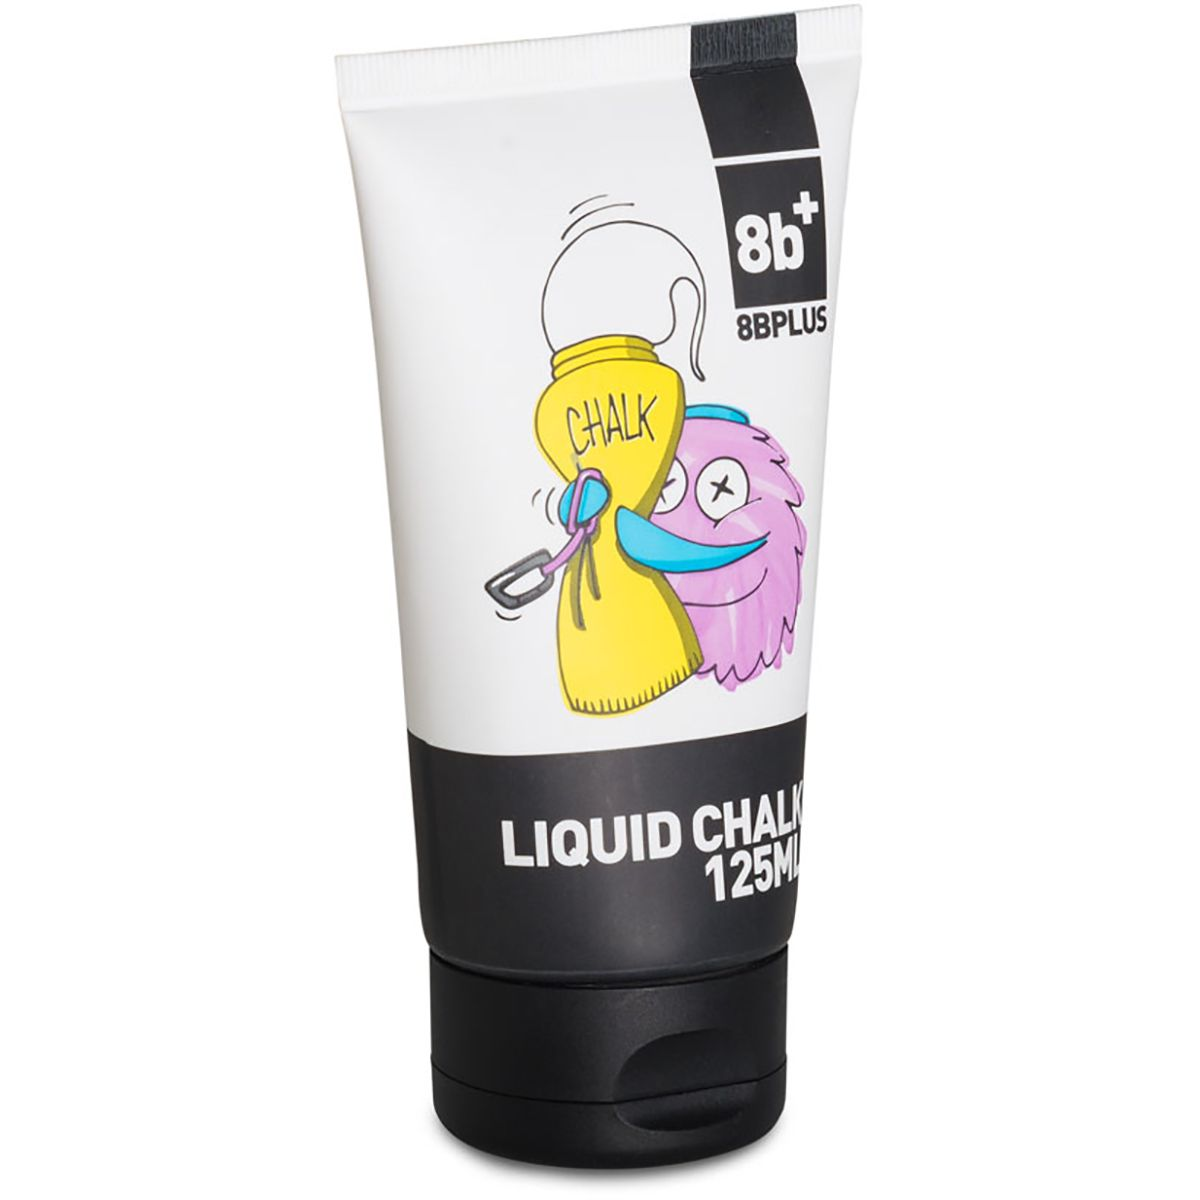 Image of 8b+ Chalk Liquid 125ml (Weiß)